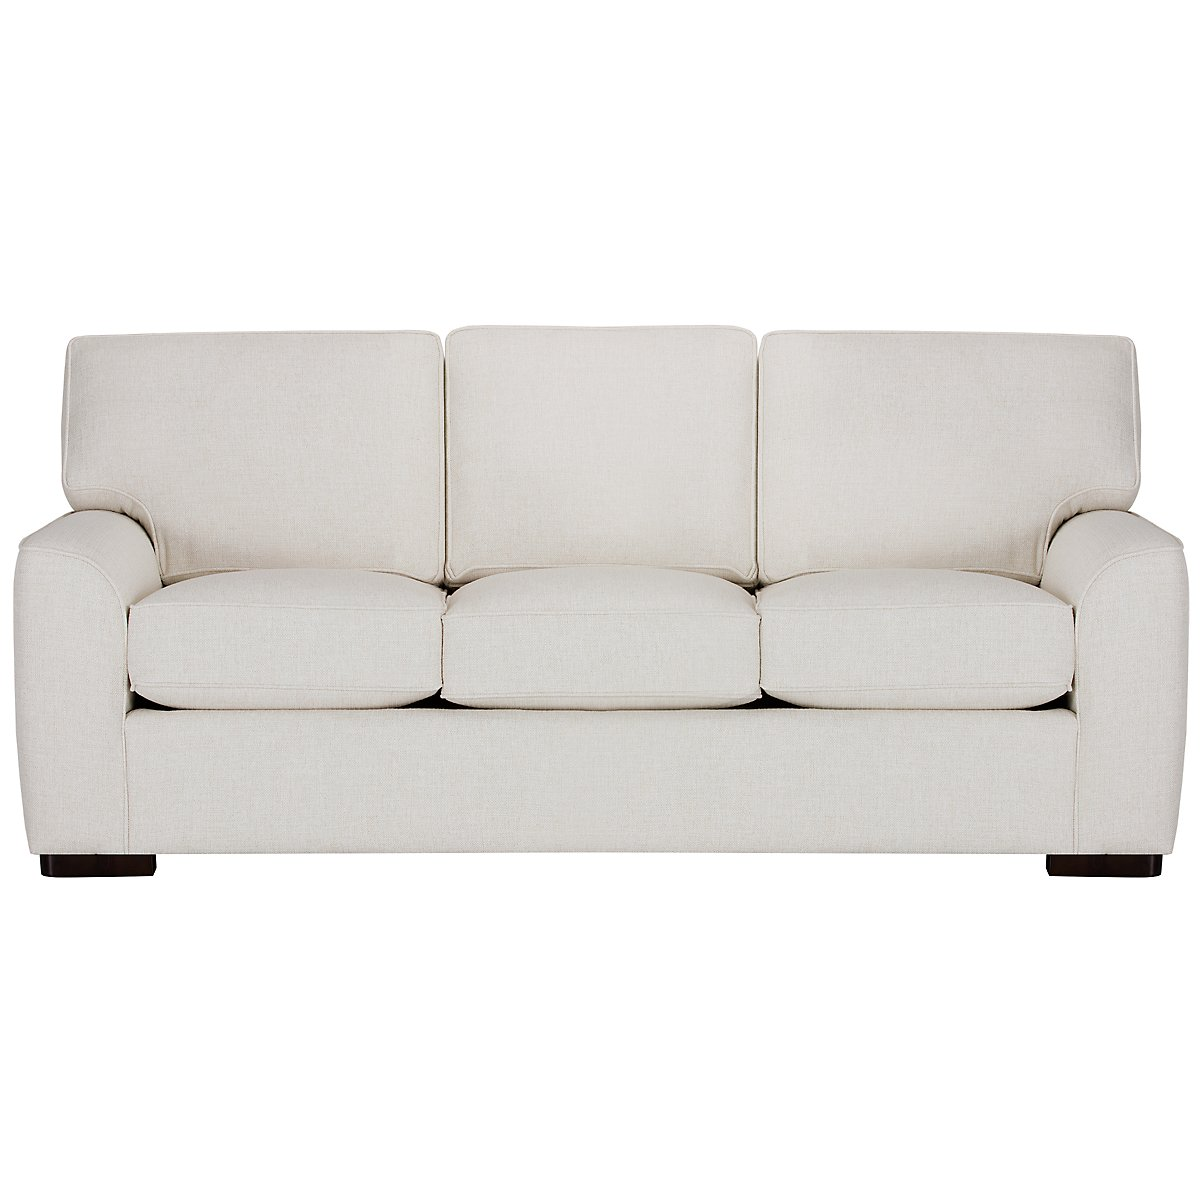 Inspirational White Sofa Chair 23 On Sofas And Couches Ideas With White  Sofa Chair